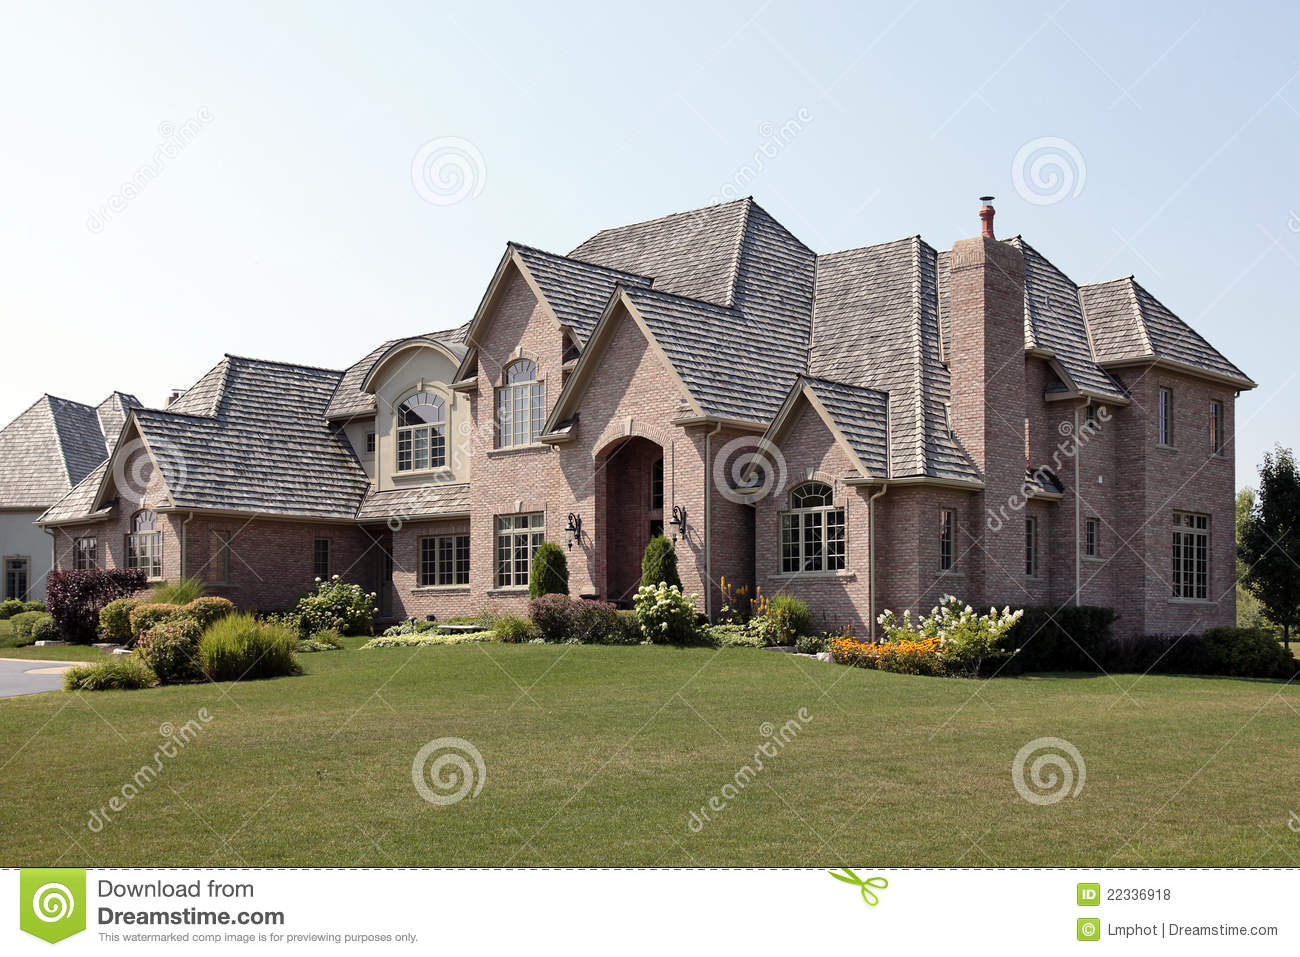 Brick home with arches